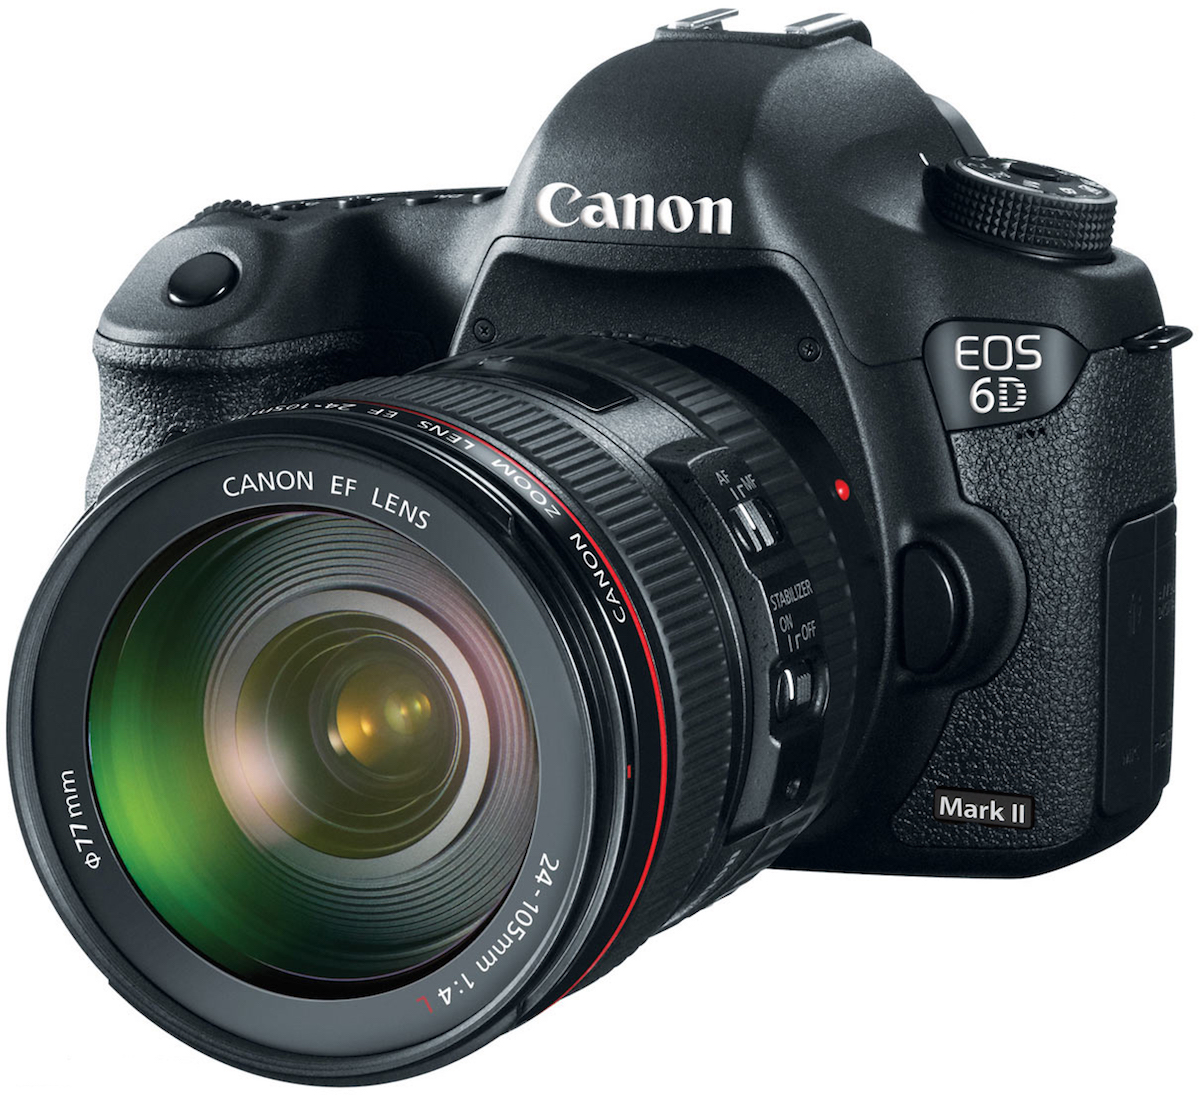 rumor canon eos 6d mark ii announcement in july 2017 daily camera news. Black Bedroom Furniture Sets. Home Design Ideas